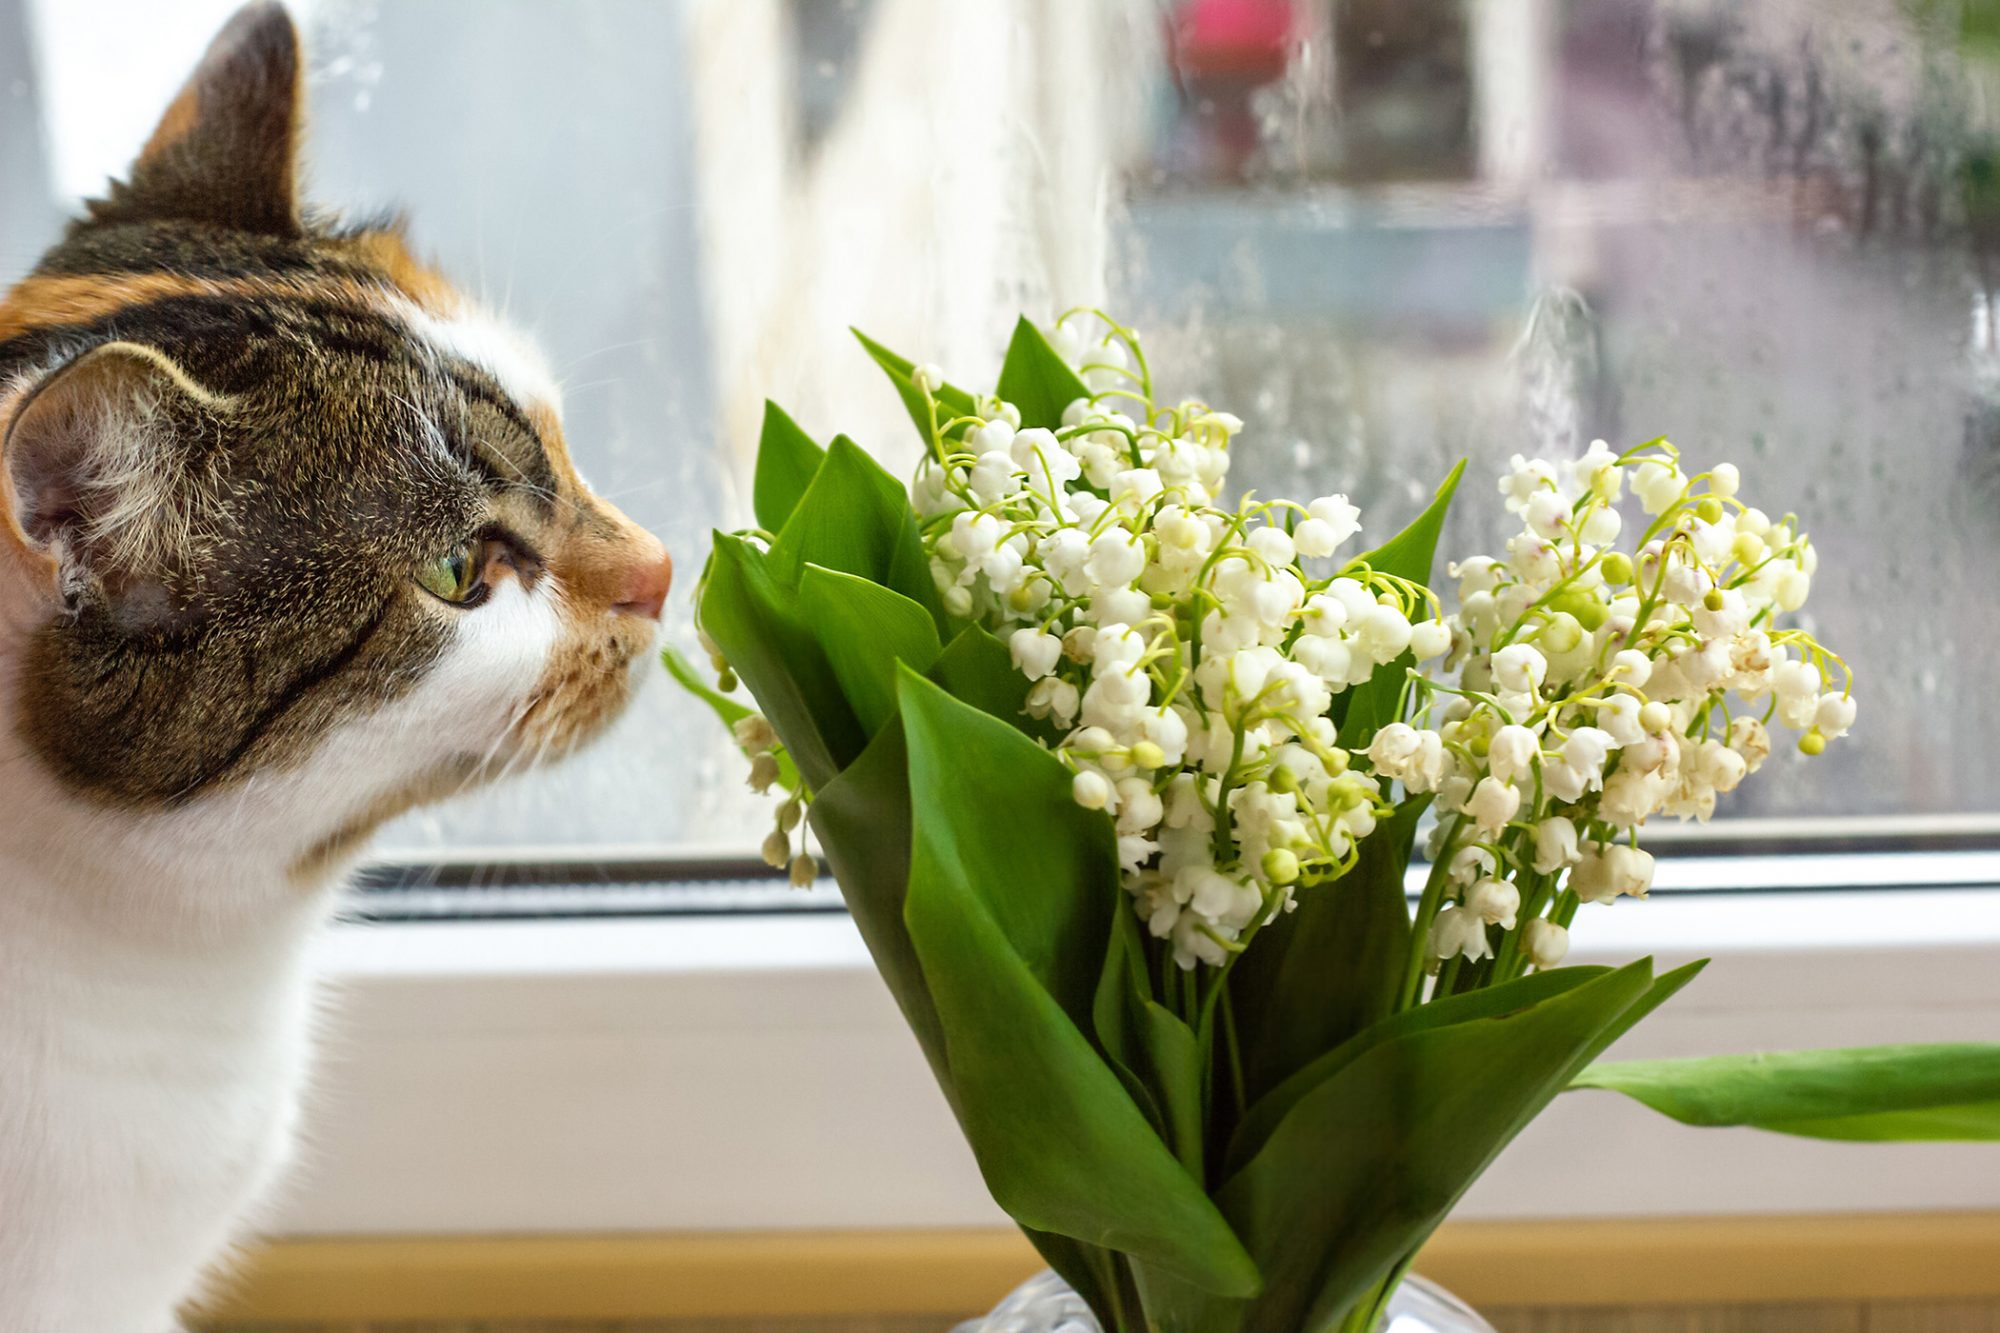 Calico cat sniffs bouquet of flowers